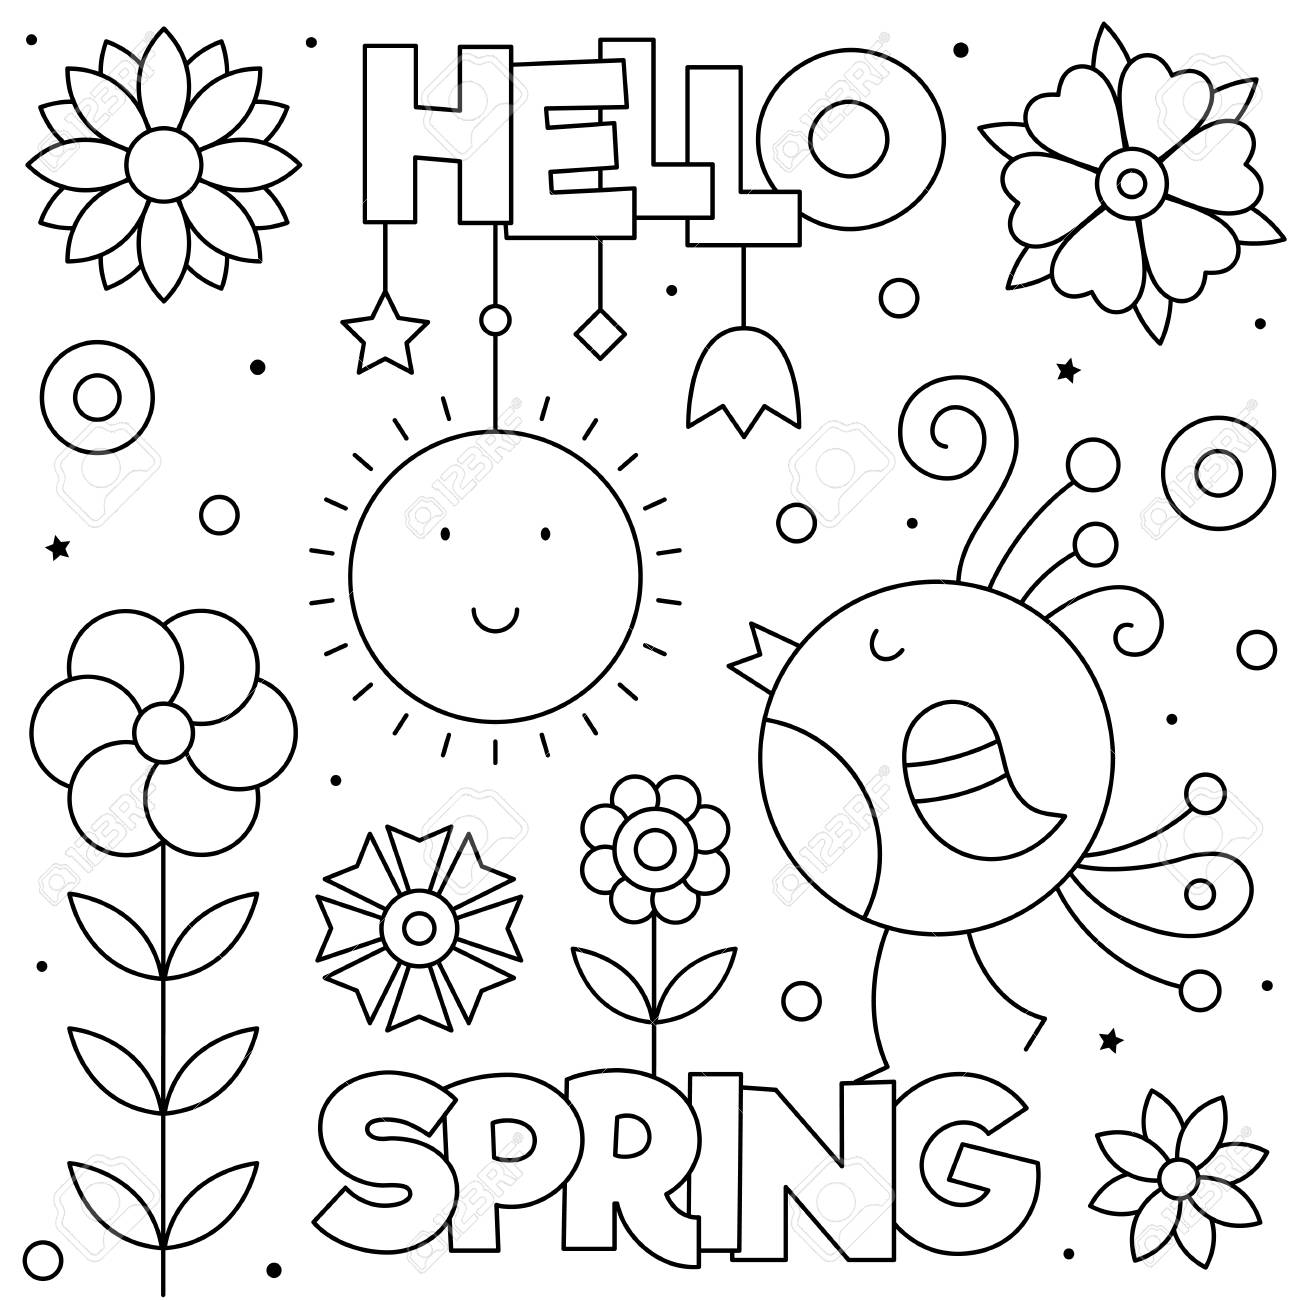 Hello Spring. Coloring page. Black and white vector illustration